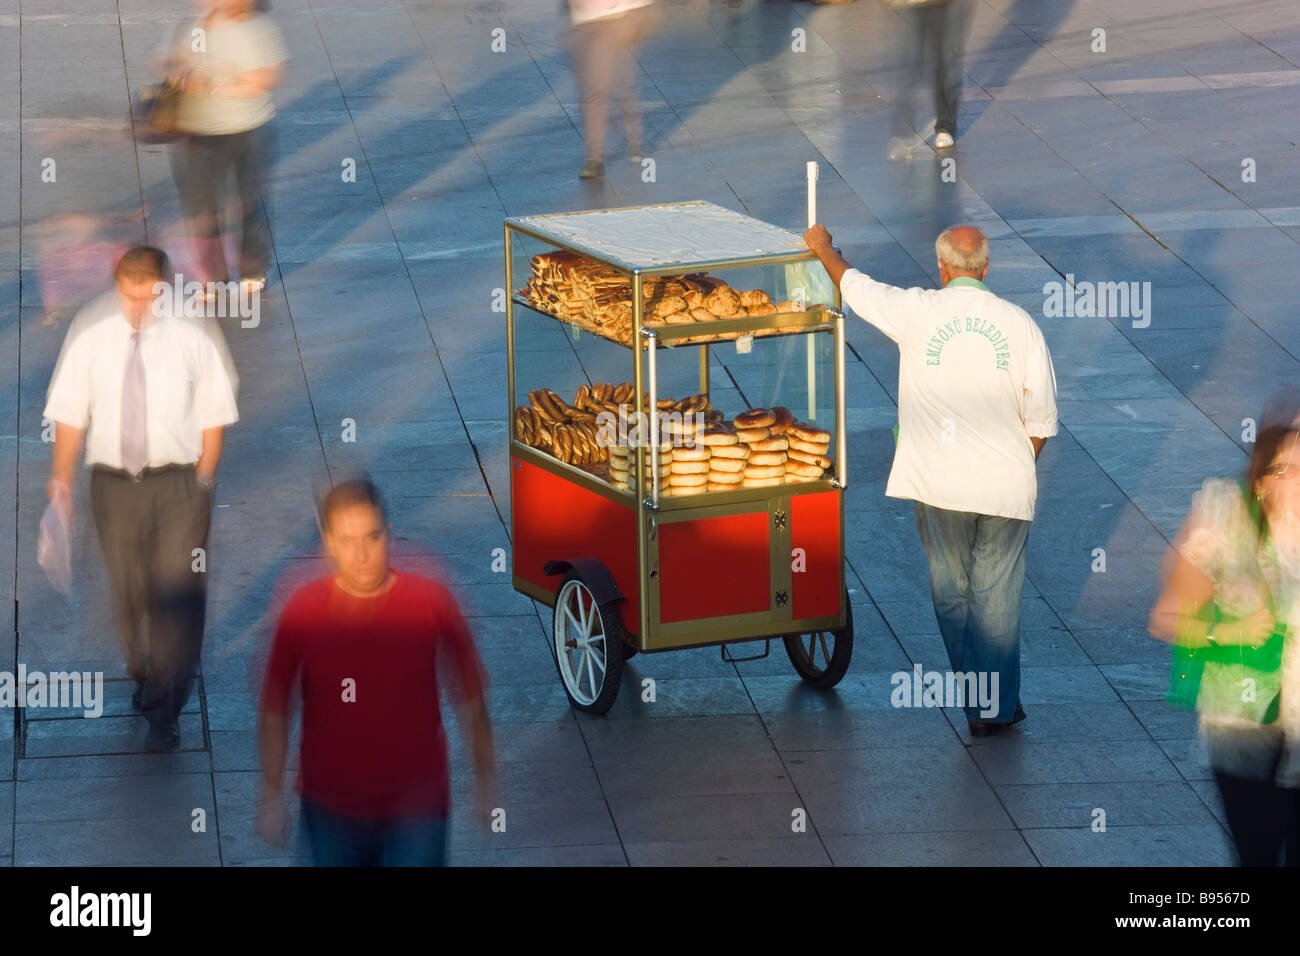 Bread snack seller during rush hour Istanbul Turkey - Stock Image